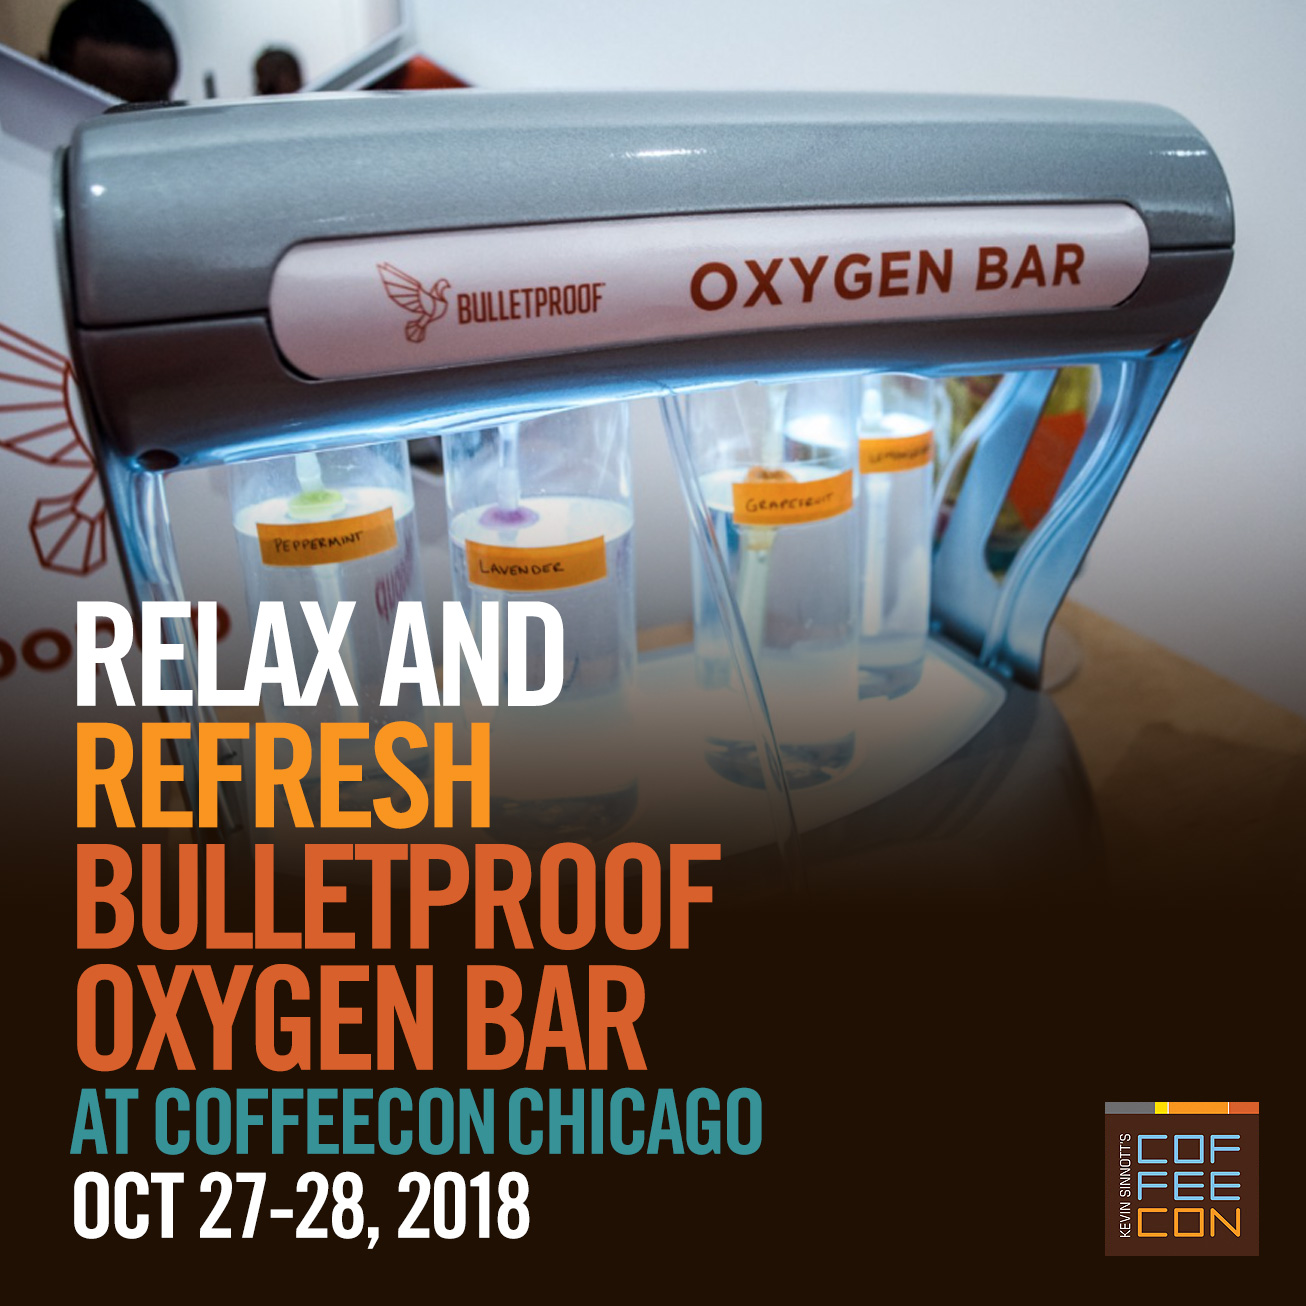 Bulletproof Oxygen Bar at CoffeeConChi 2018